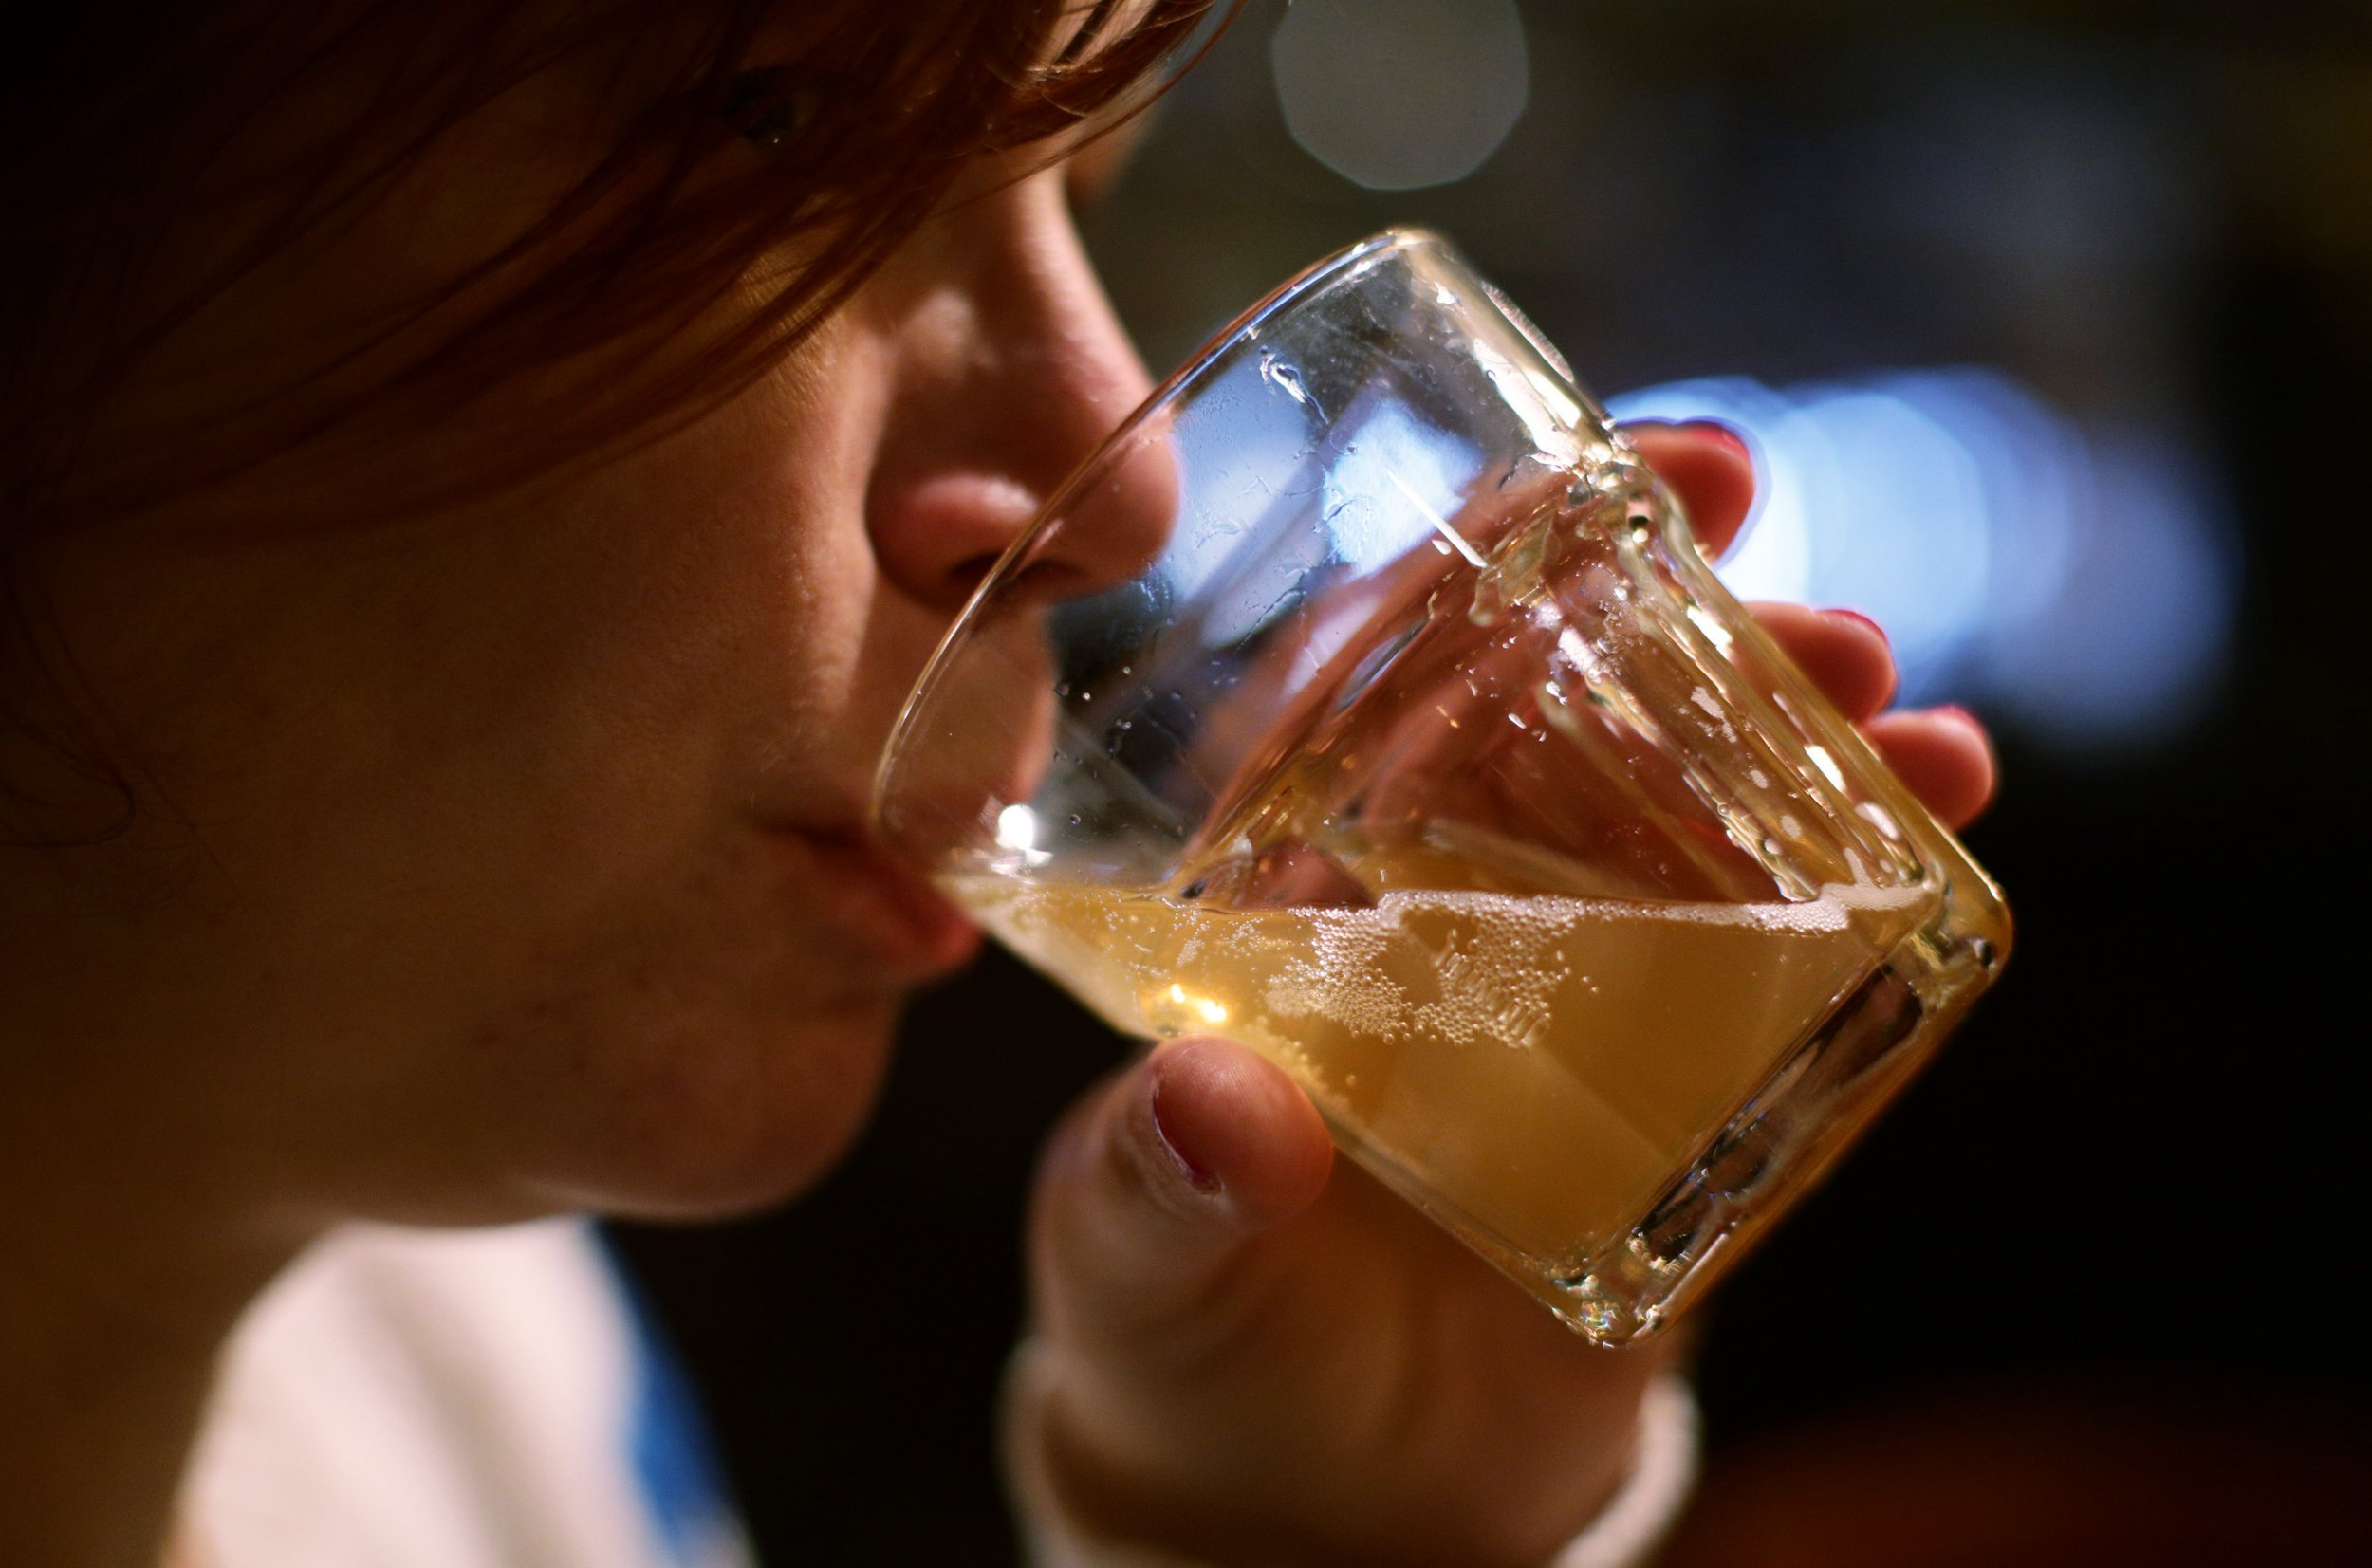 Alcohol is killing more women than ever before